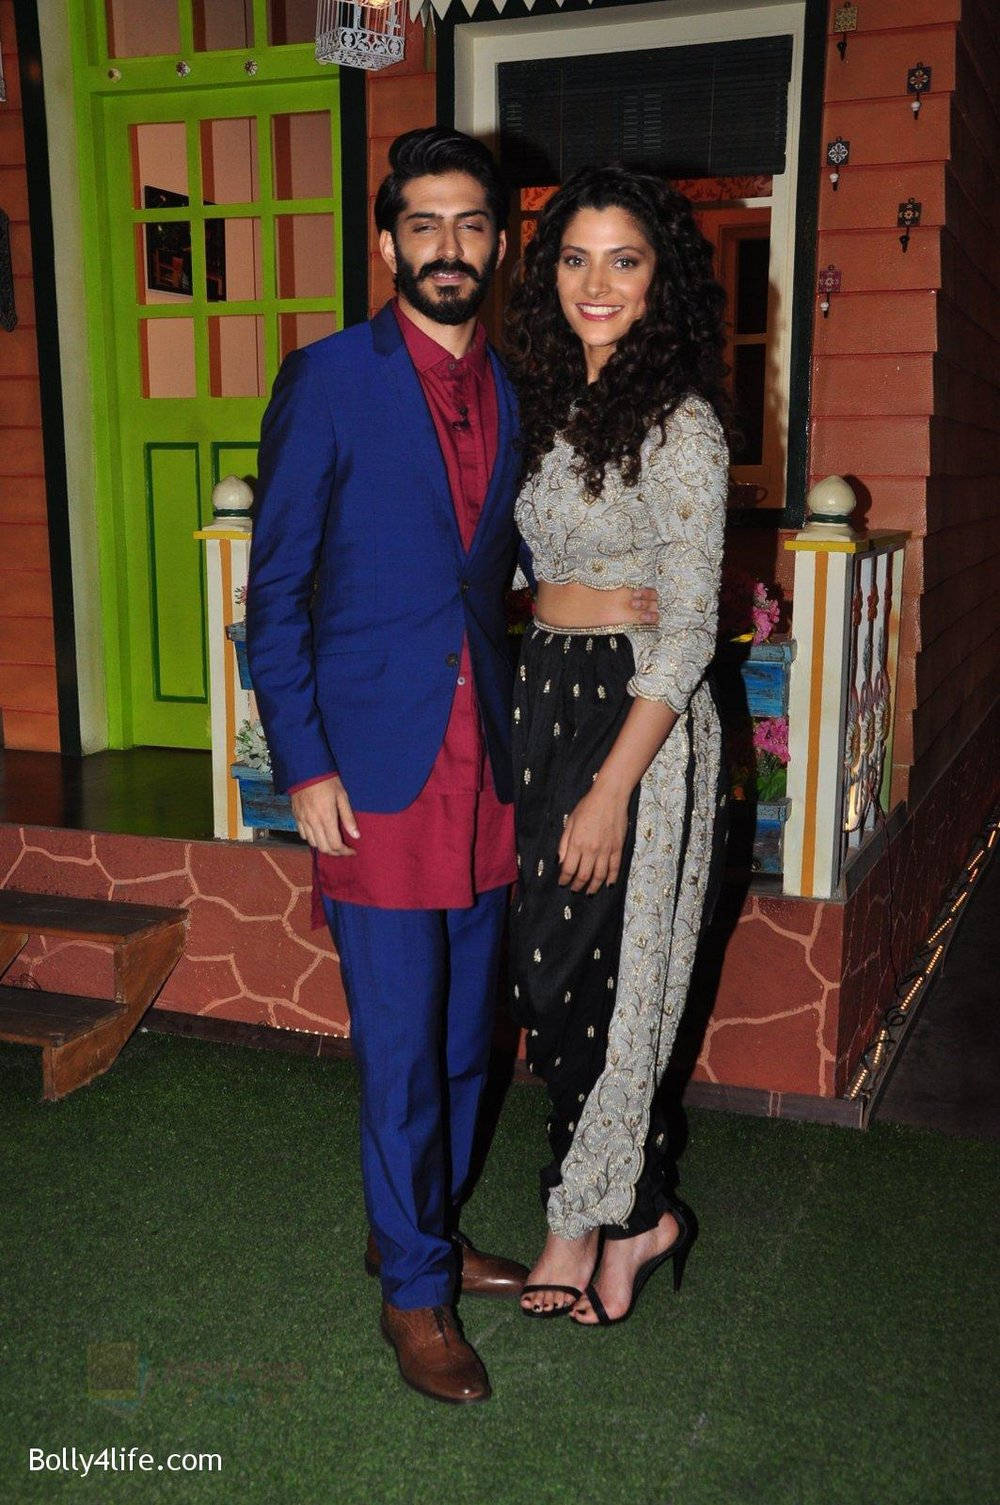 Harshvardhan-Kapoor-Saiyami-Kher-promotes-Mirzya-on-the-sets-of-The-Kapil-Sharma-Show-on-30th-Sept-2016-94.jpg